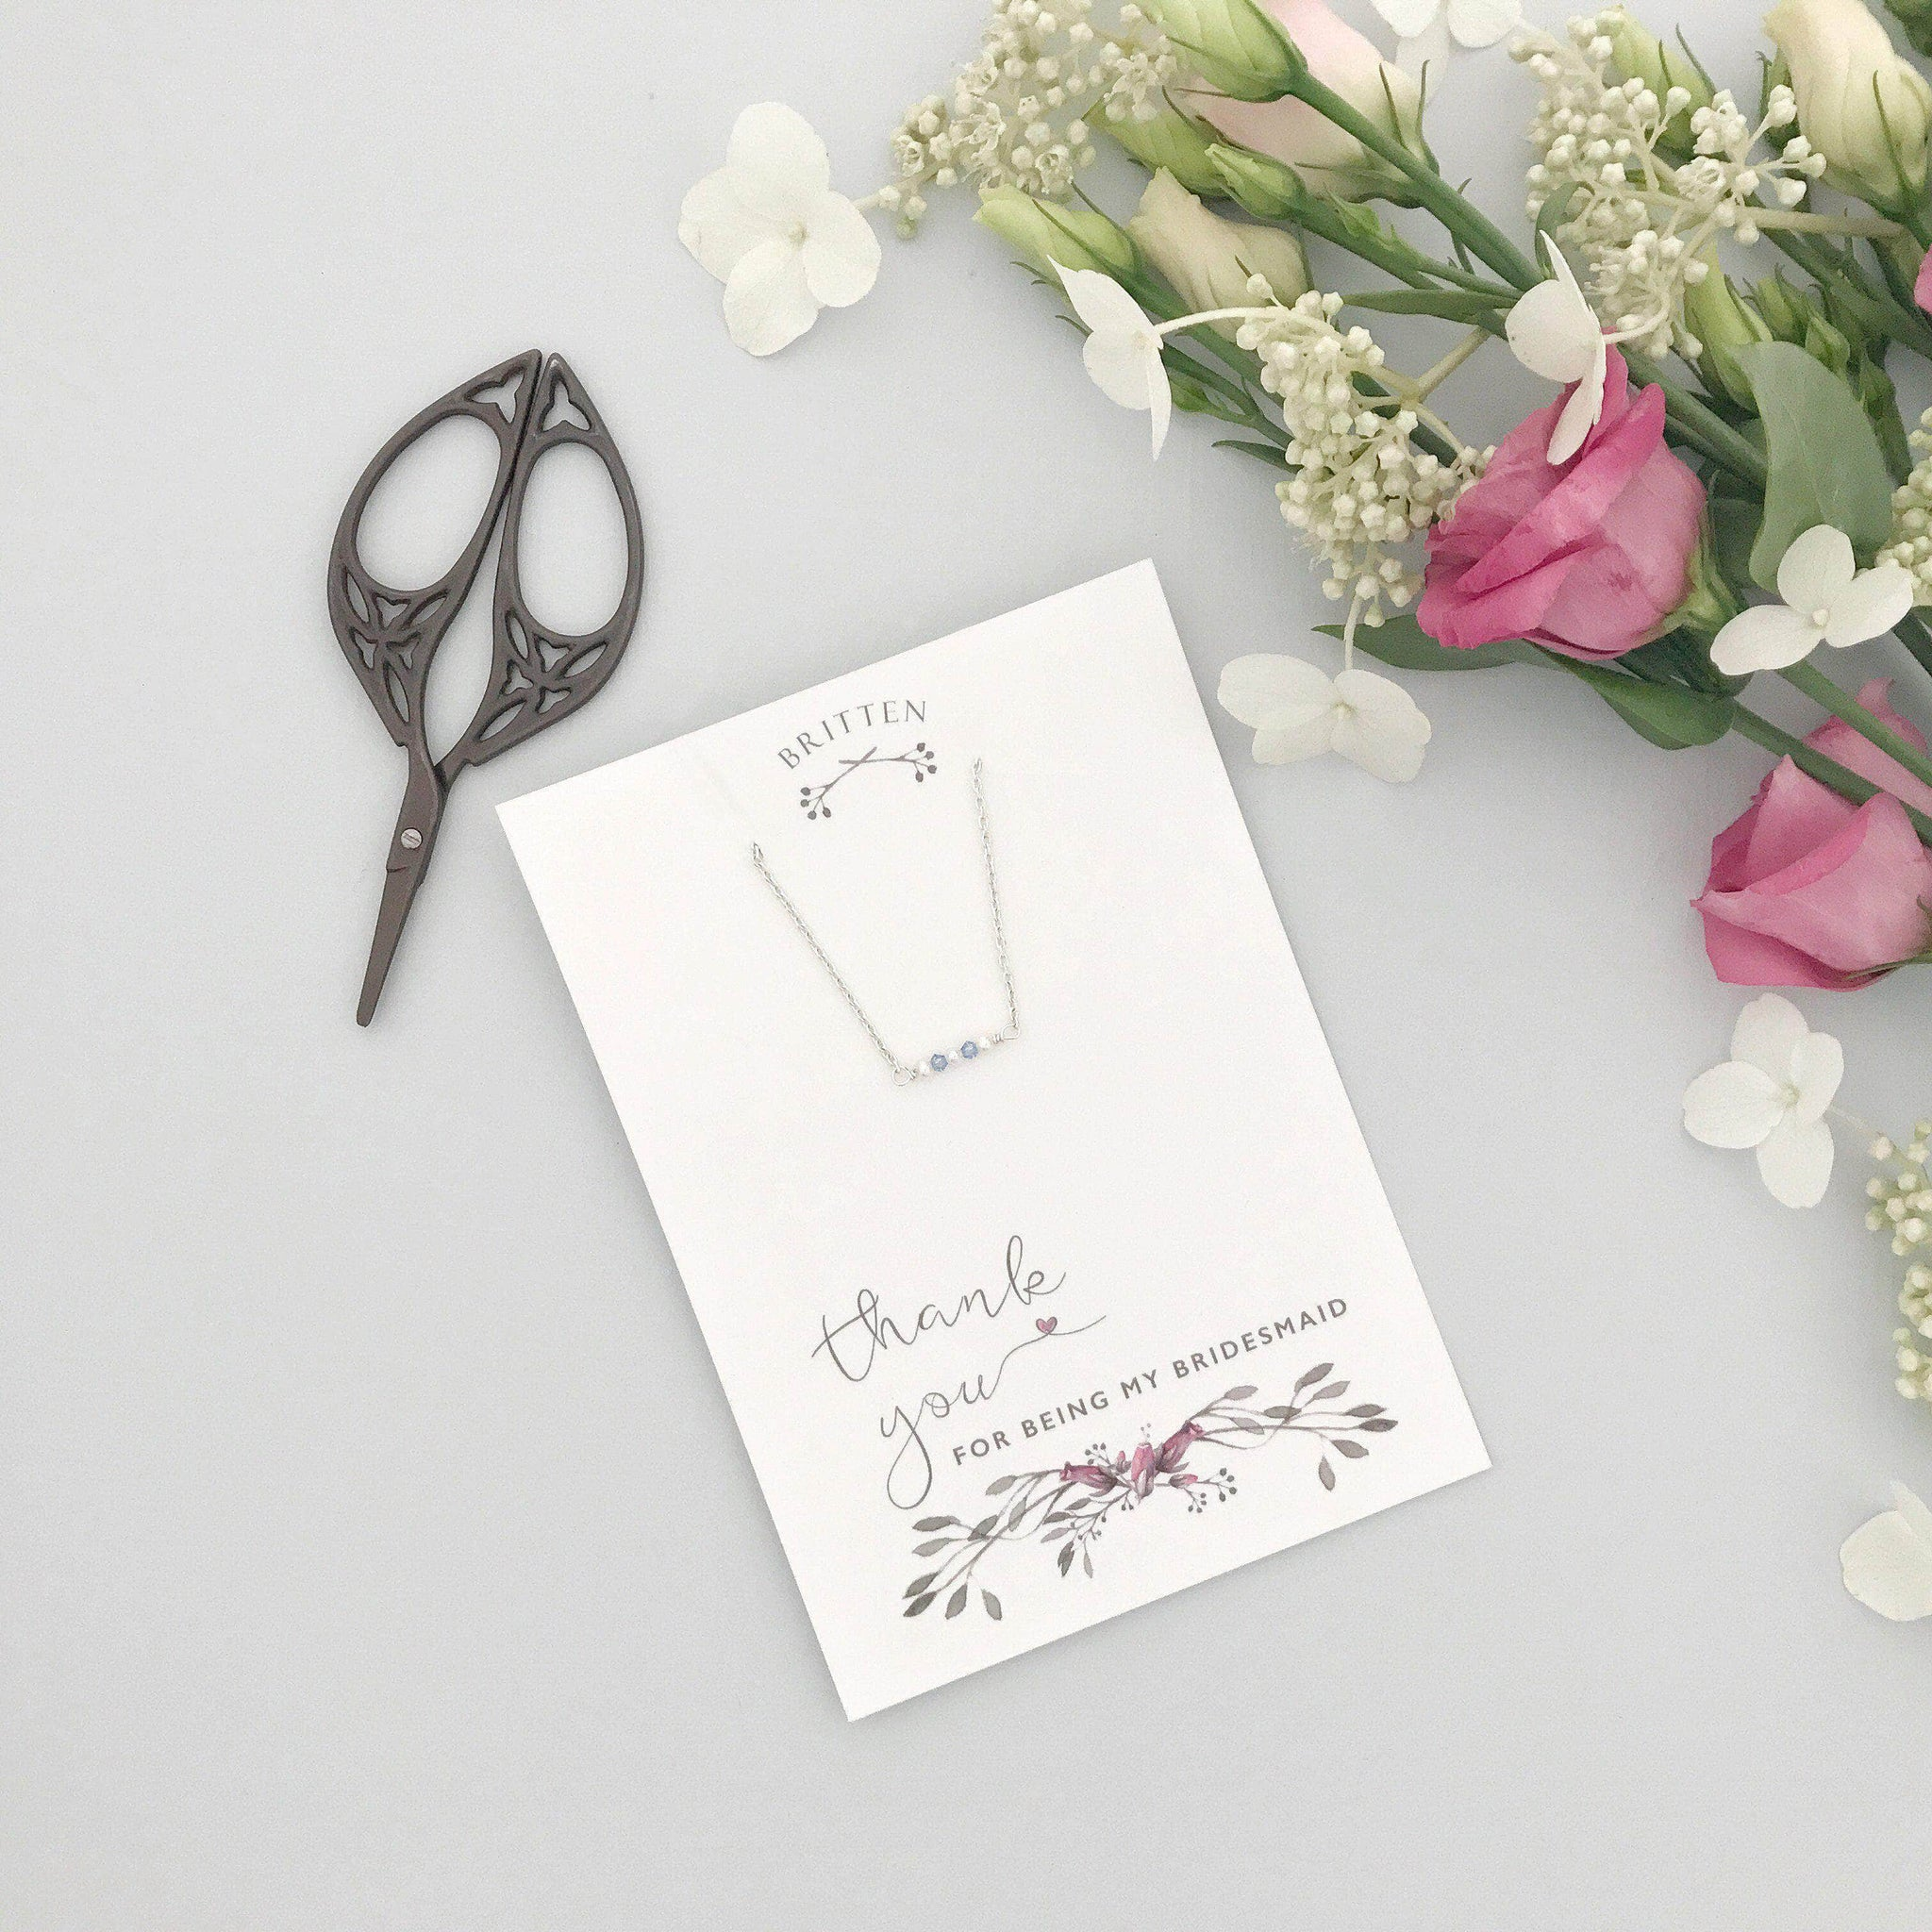 Bridesmaid 'thank you' gift bracelet - 'Mollie' in silver